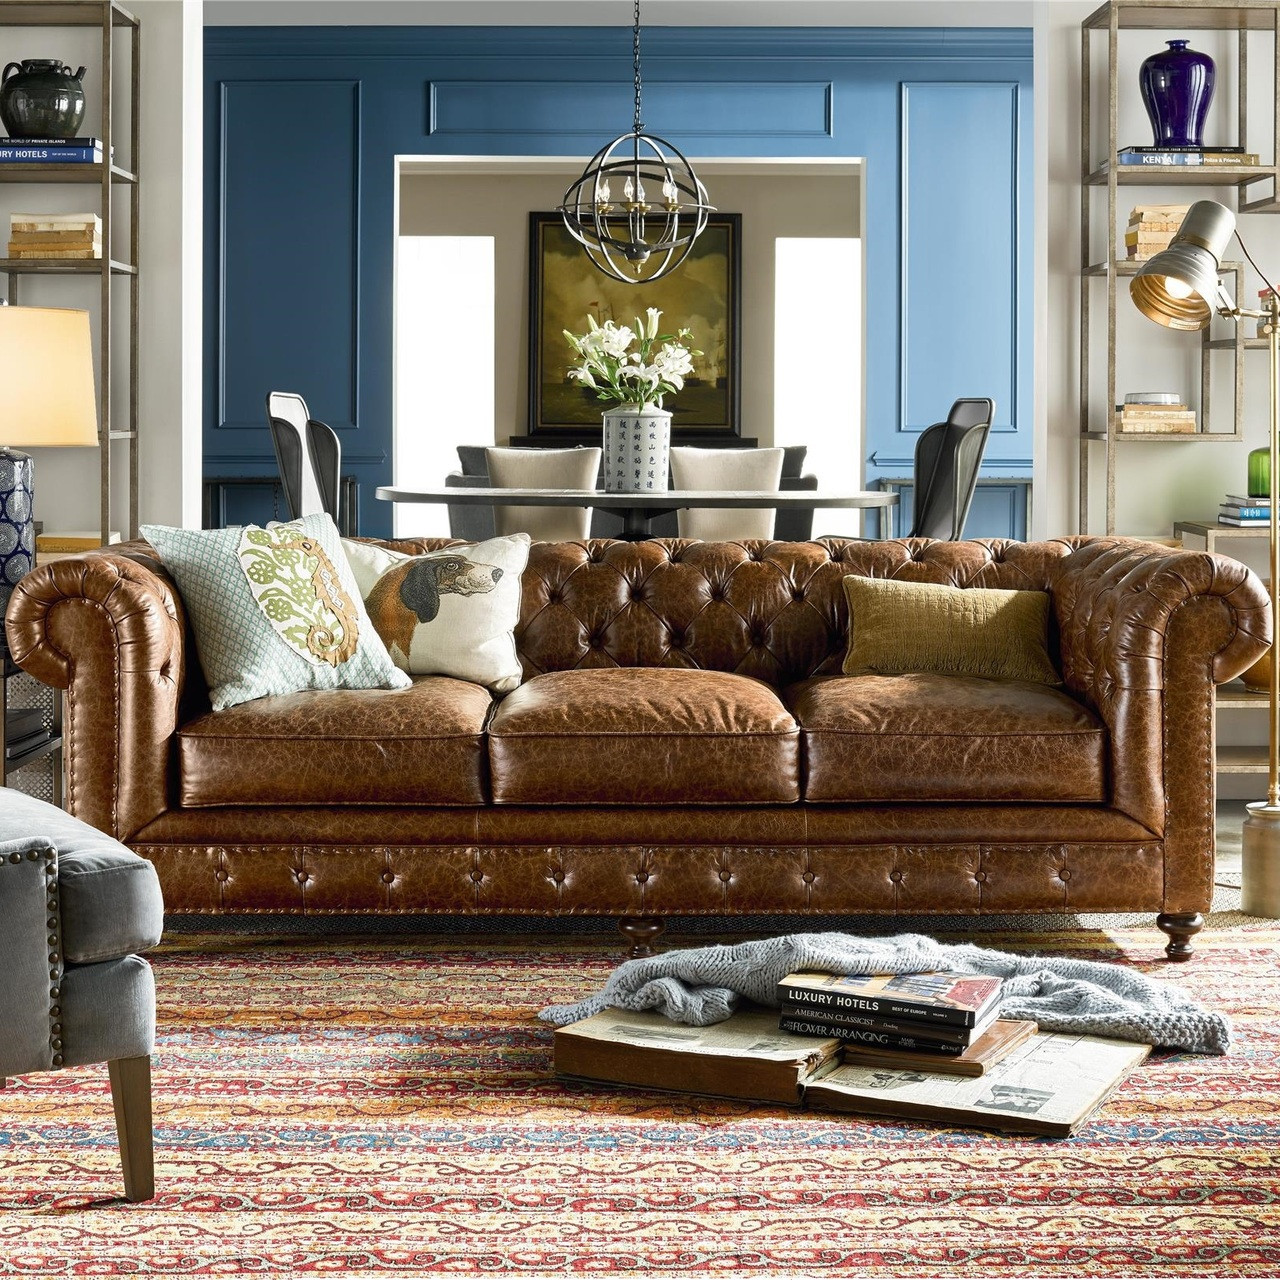 Chesterfield Sofa Belgian 3 Cushion Tufted Saddle Leather Chesterfield Sofa